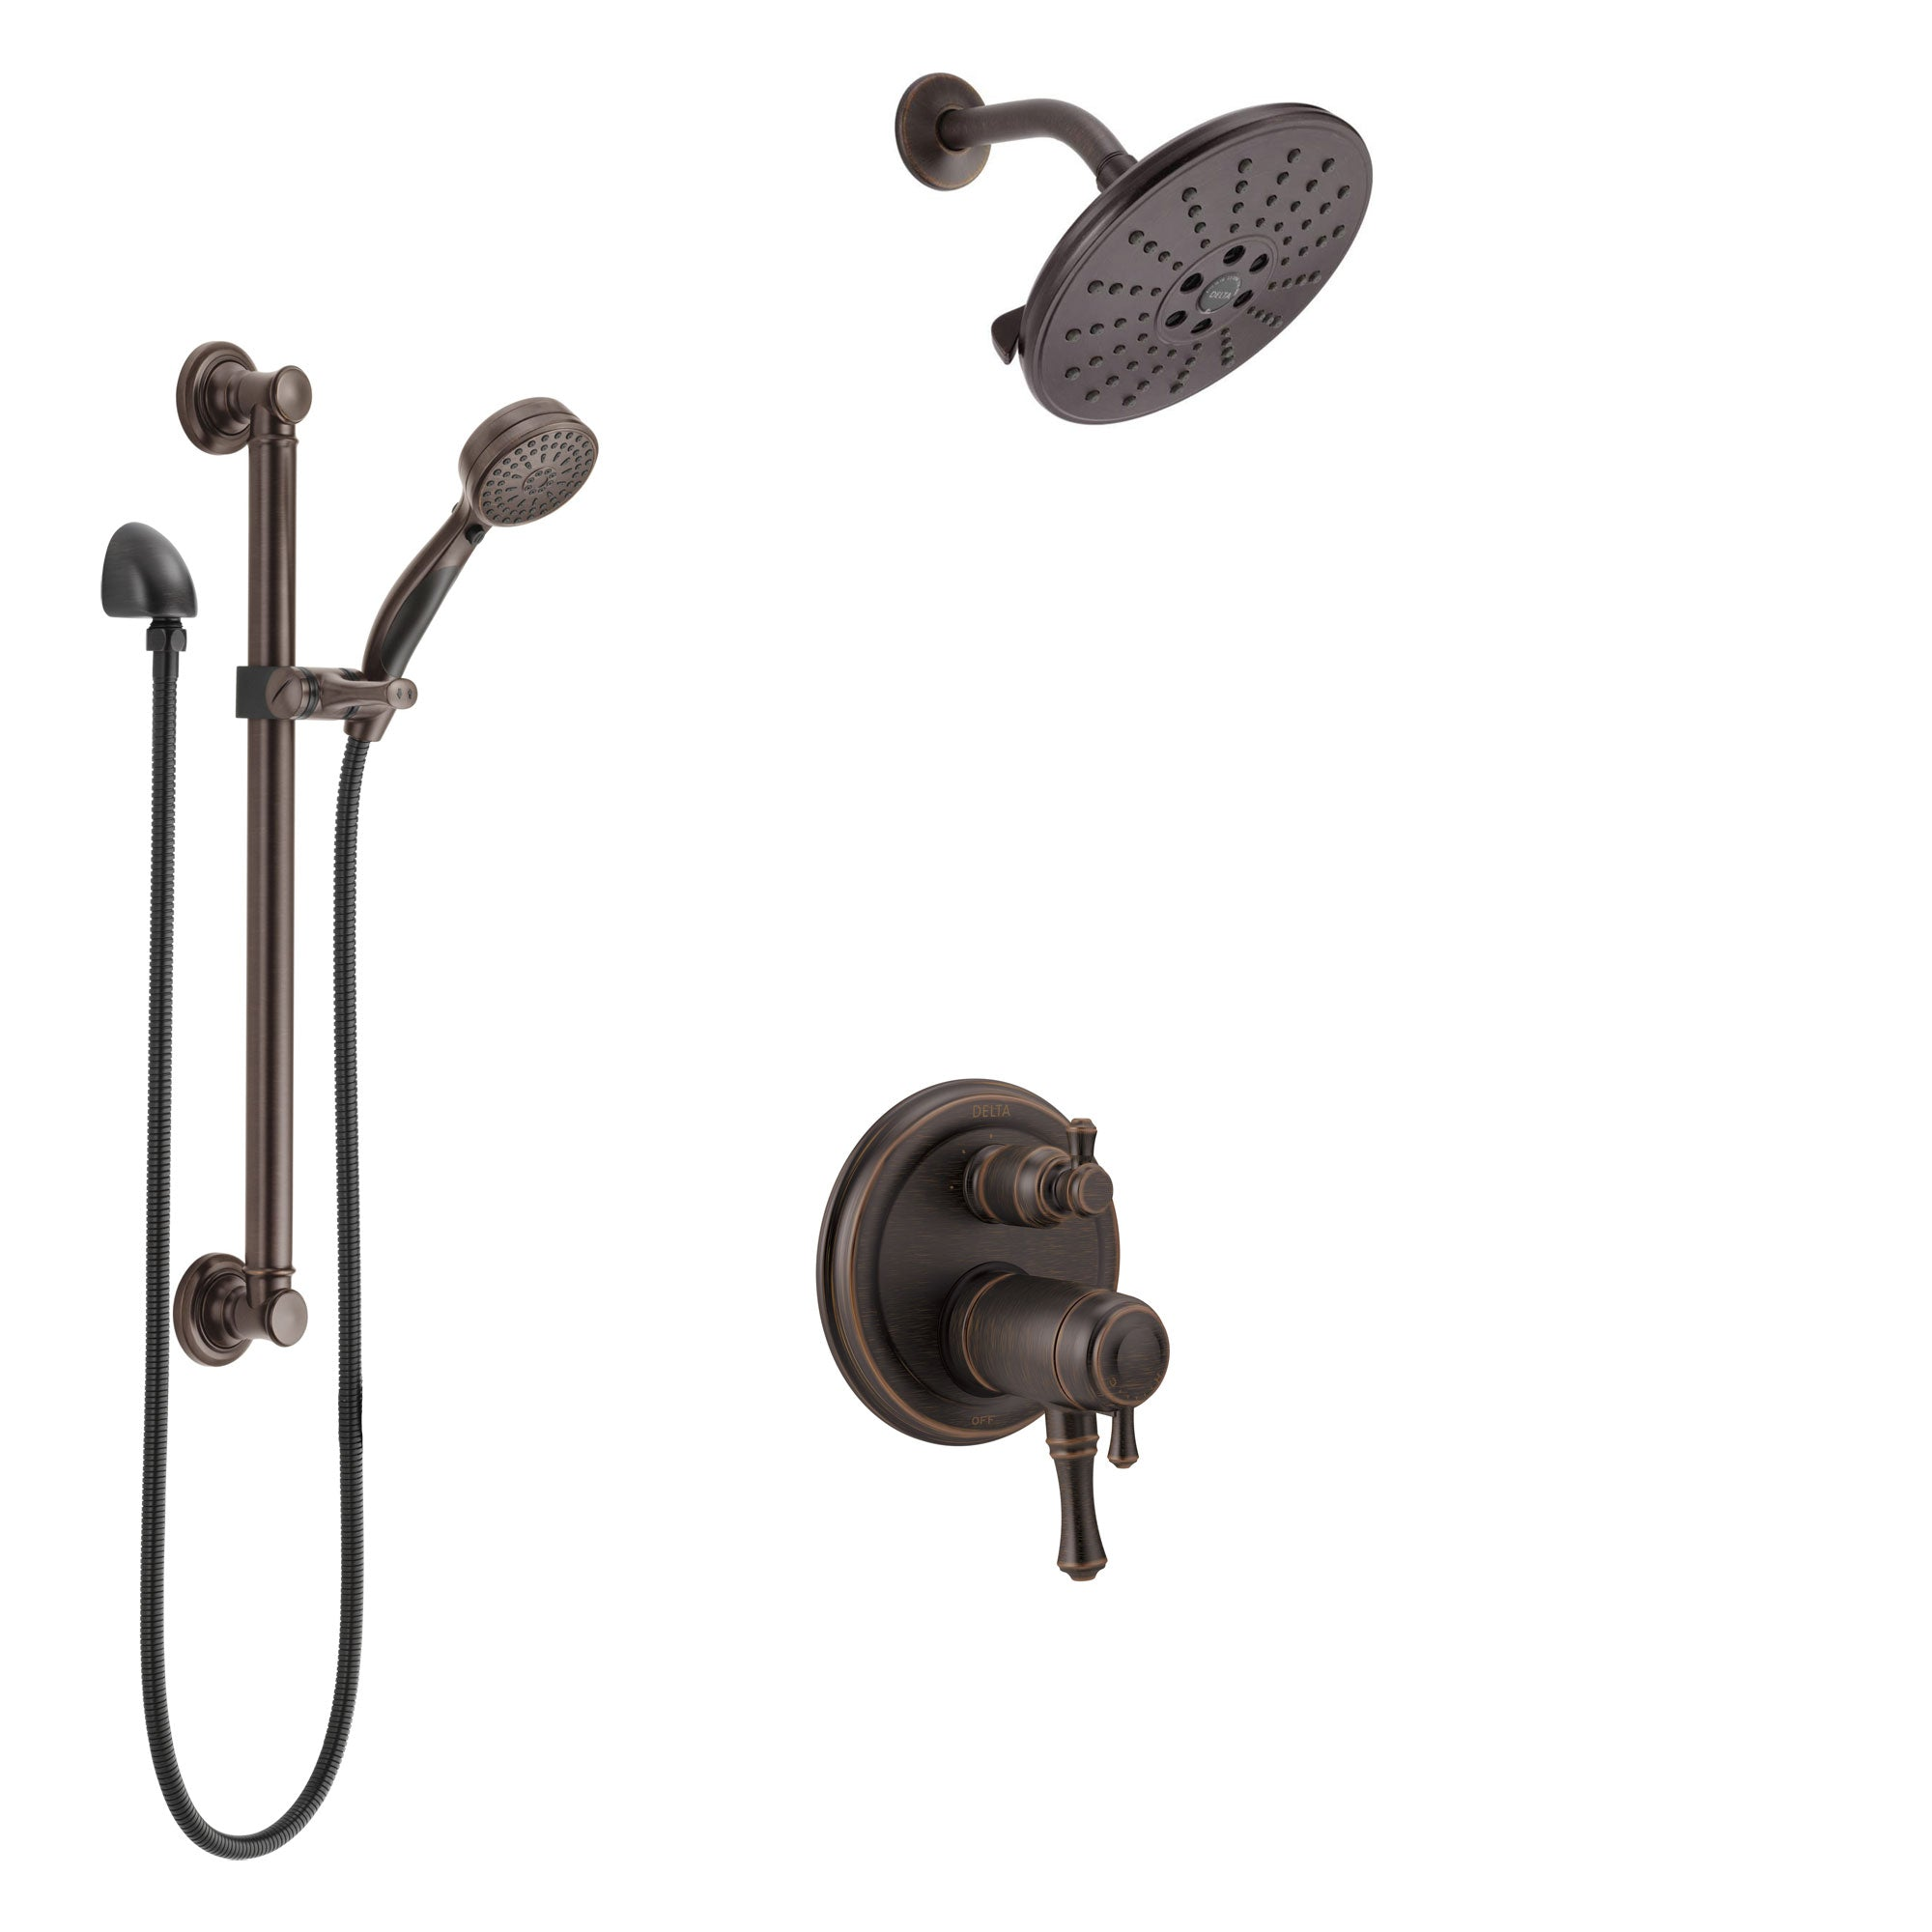 Delta Cassidy Venetian Bronze Integrated Diverter Shower System with Dual Thermostatic Control, Showerhead, and Hand Shower with Grab Bar SS27T897RB7